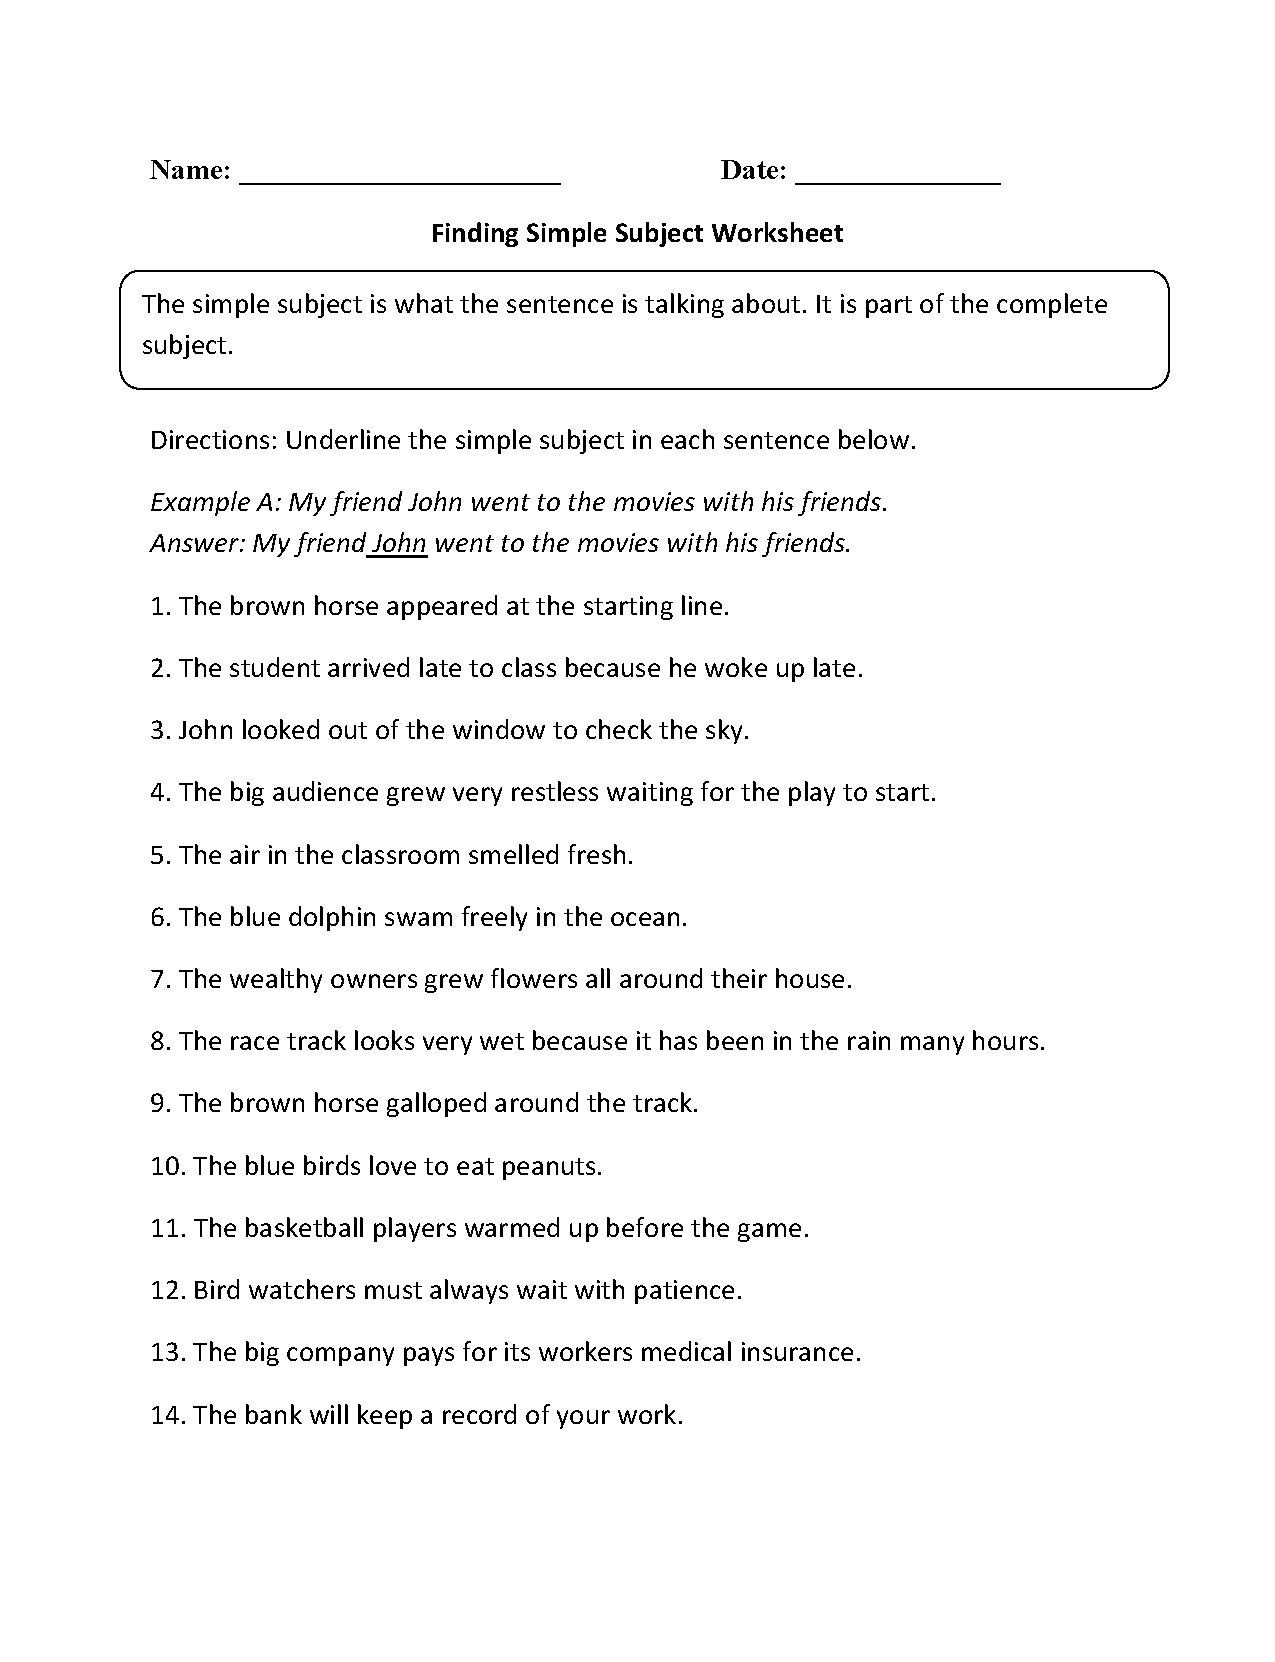 Finding Simple Subject Worksheet